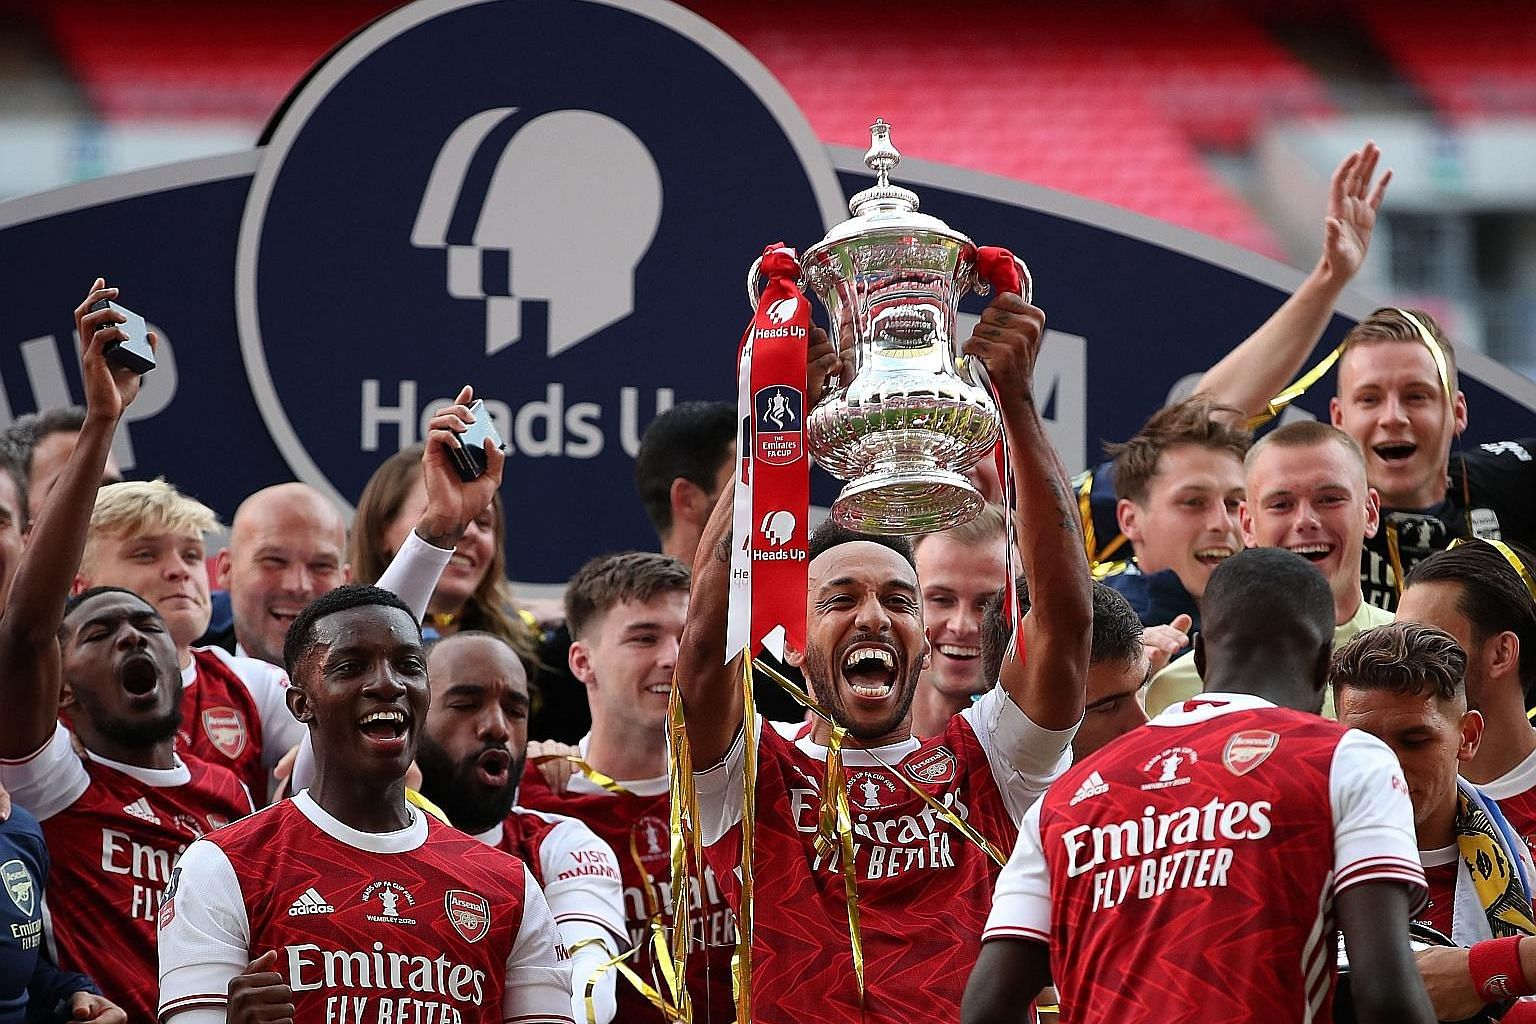 Above: Pierre-Emerick Aubameyang beats Chelsea goalkeeper Willy Caballero to give Arsenal a 2-1 lead at Wembley Stadium, which they held on to win. Left: Gabonese striker and captain Aubameyang holding the trophy as the Gunners celebrate their record